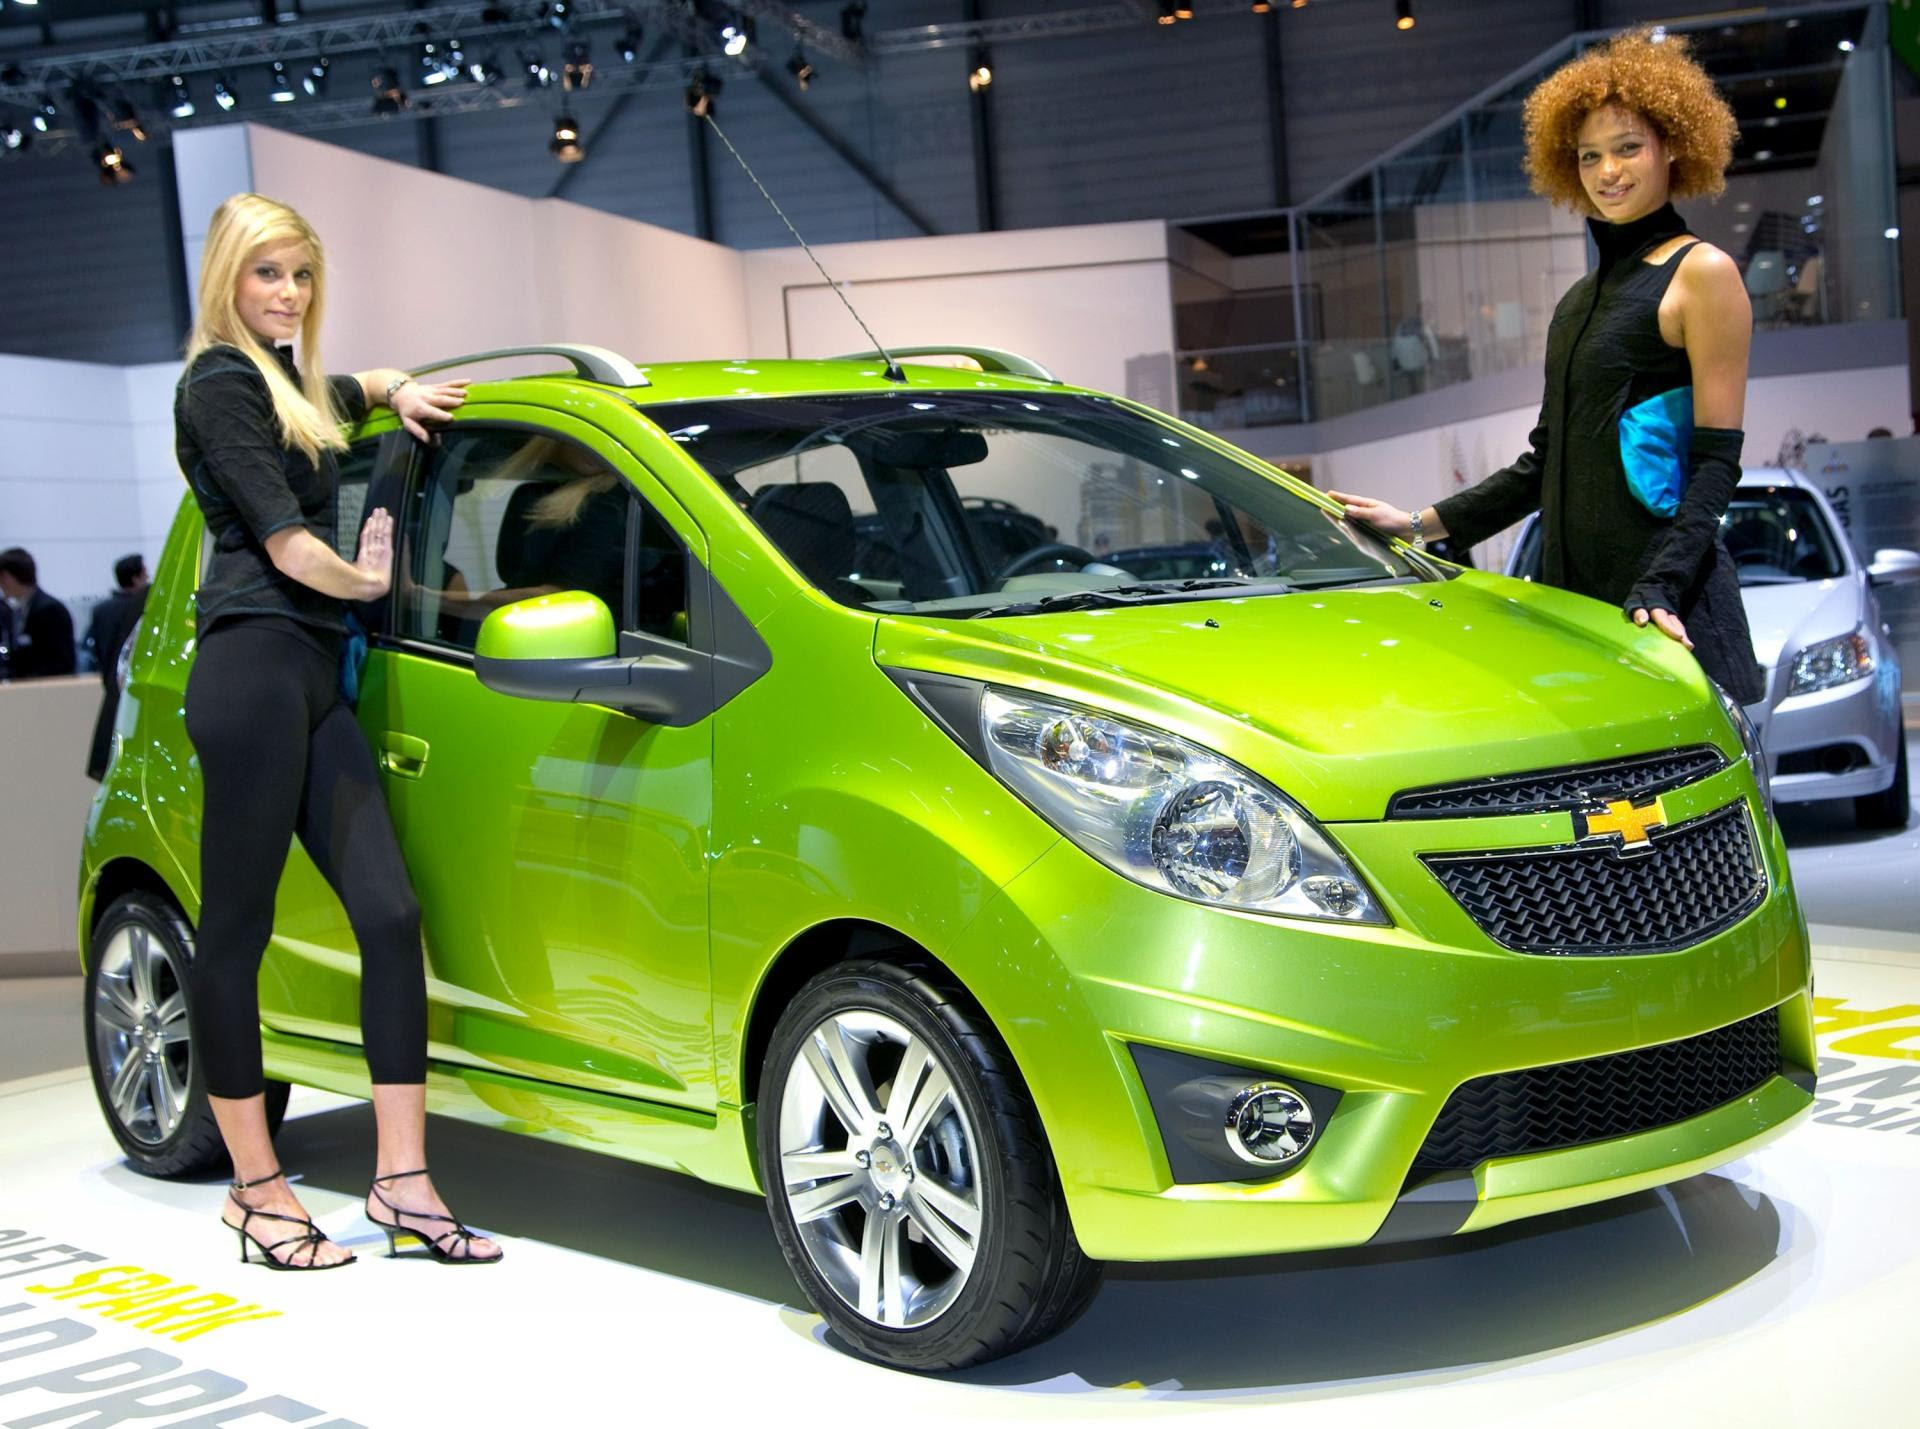 Berger Chevrolet | Chevy 'Sparks' Interest with New Chevrolet Spark